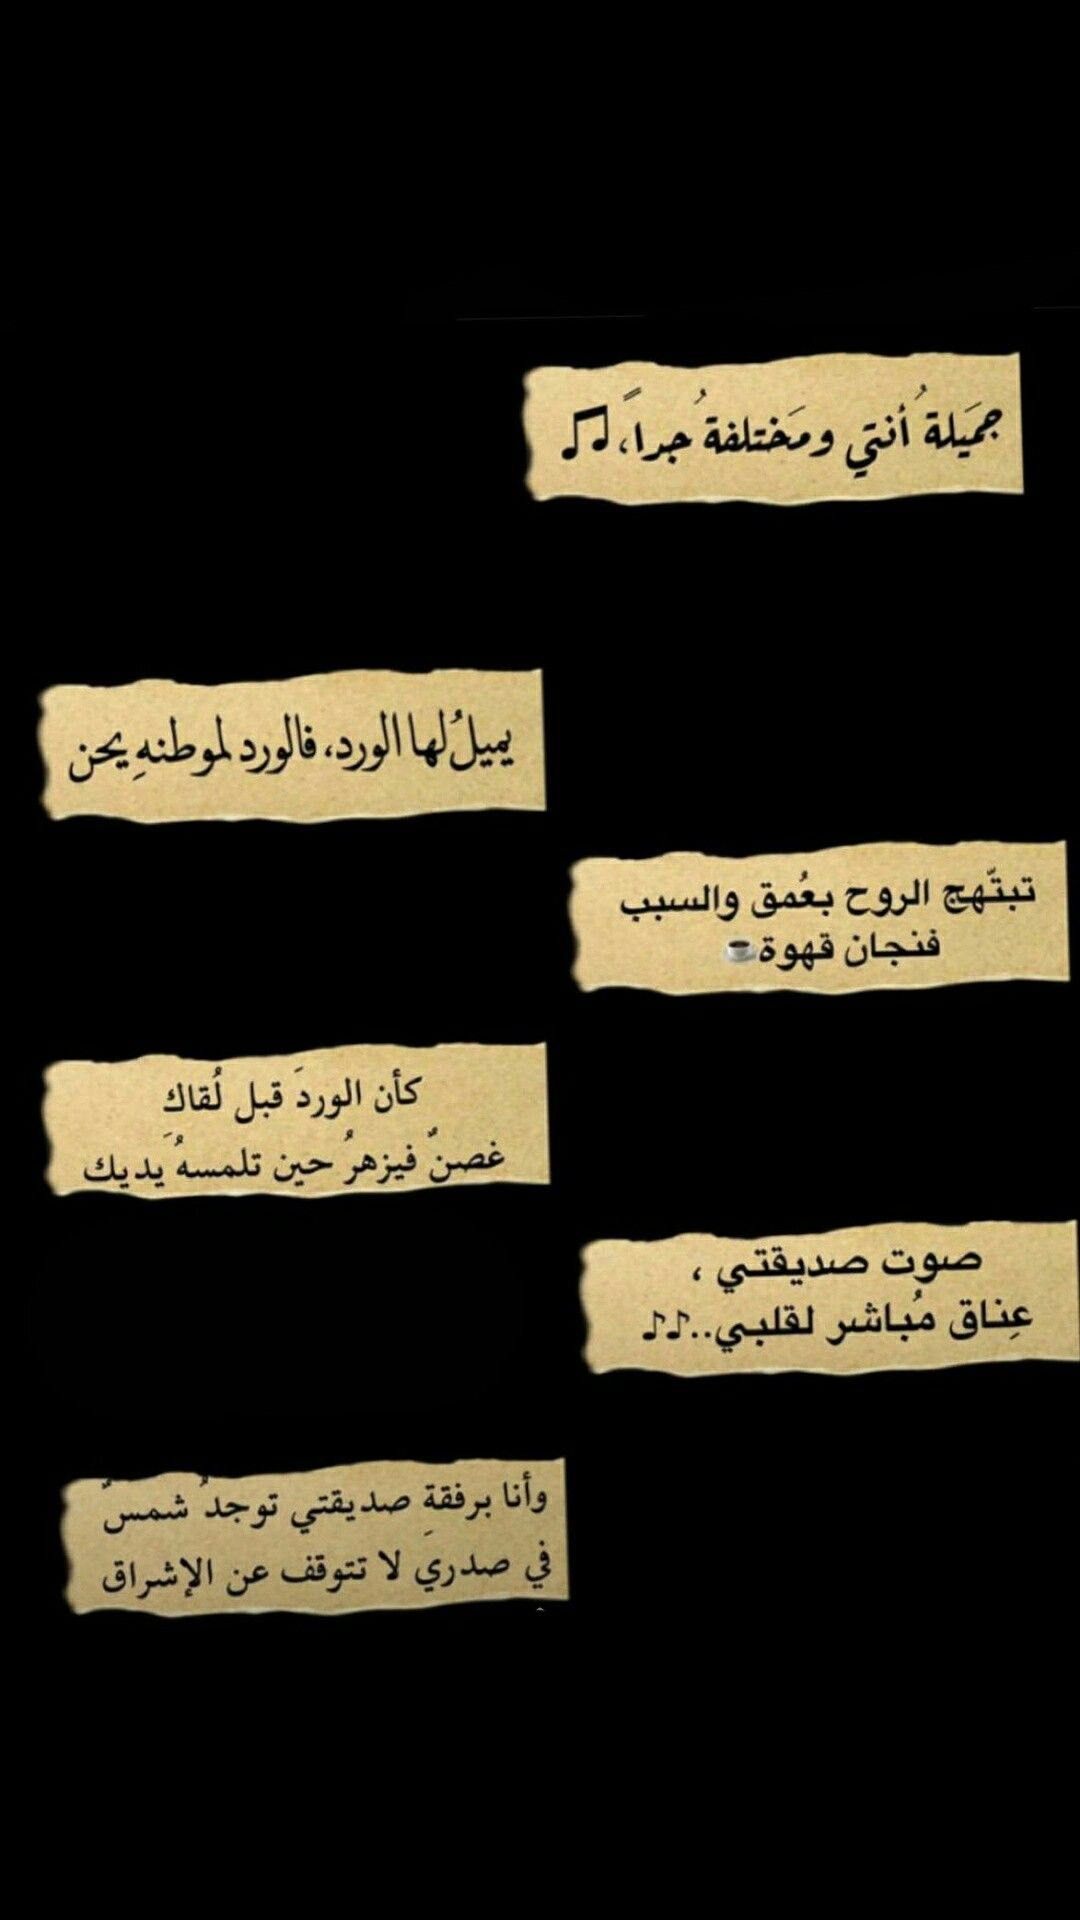 Pin By Hadil Maafi On Arabic Love Quotes Photography Love Quotes Calligraphy Quotes Love Iphone Wallpaper Quotes Love